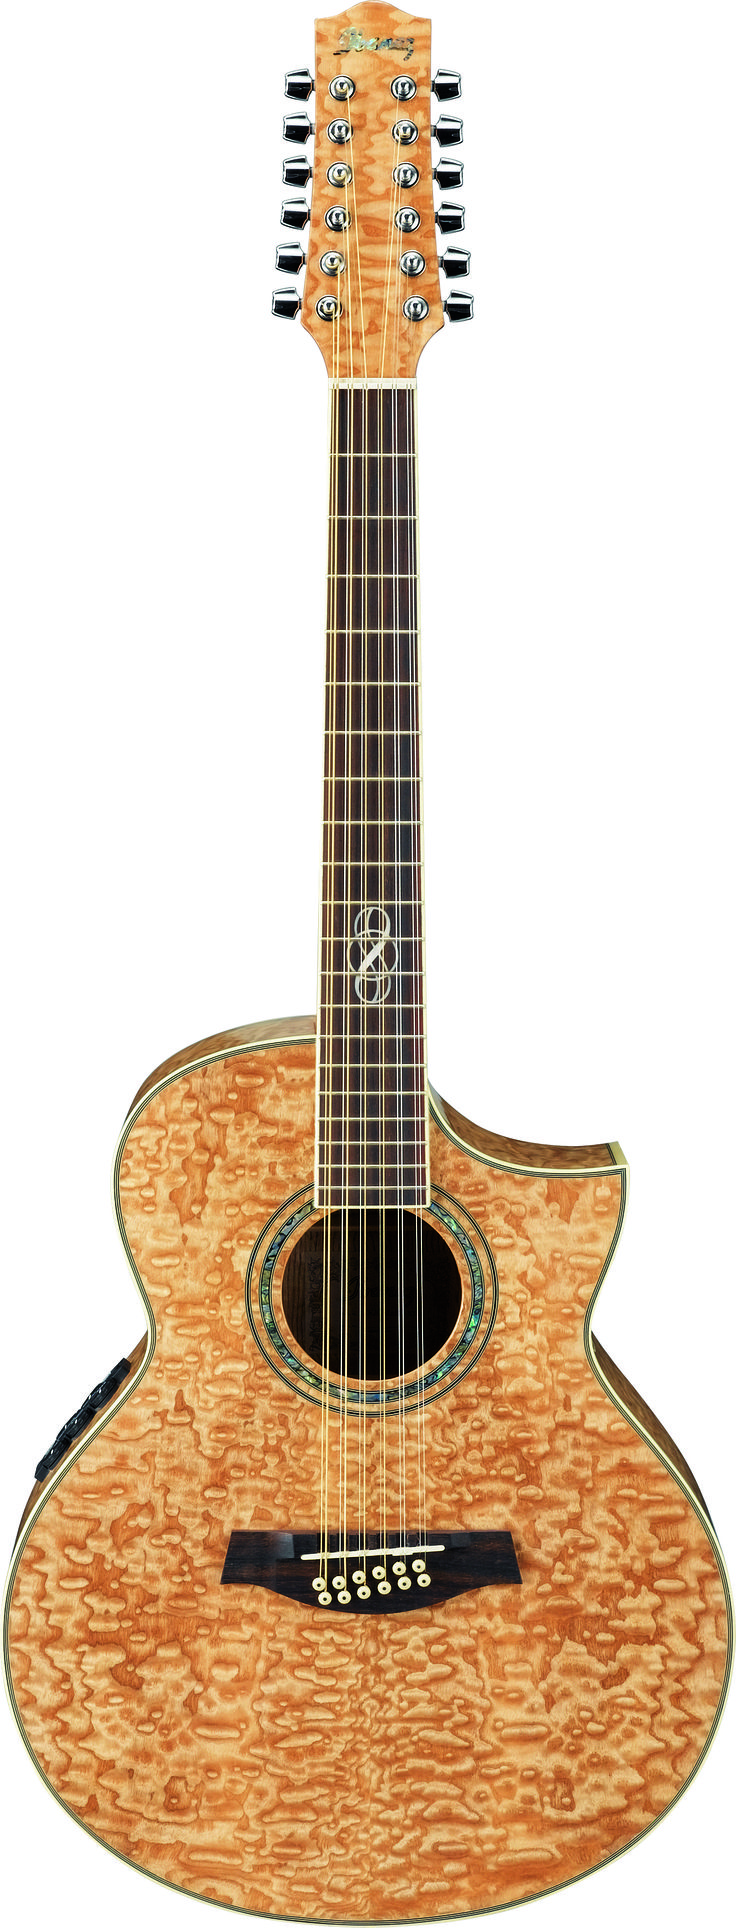 "Ibanez EW35SPENT Acoustic Guitar: SERIES BASICS•EW Body with Cutaway  •Mahogany Neck  •B-Band® UST™ Pickup  •Ibanez SRTc Preamp with Chorus, Onboard Tuner  •Balanced 1/4"" and XLR Outputs  •Ibanez Ivorex II™ Nut and Saddle  •Ibanez Advantage™ Bridge Pins  •D'Addario® EXP™ Strings"